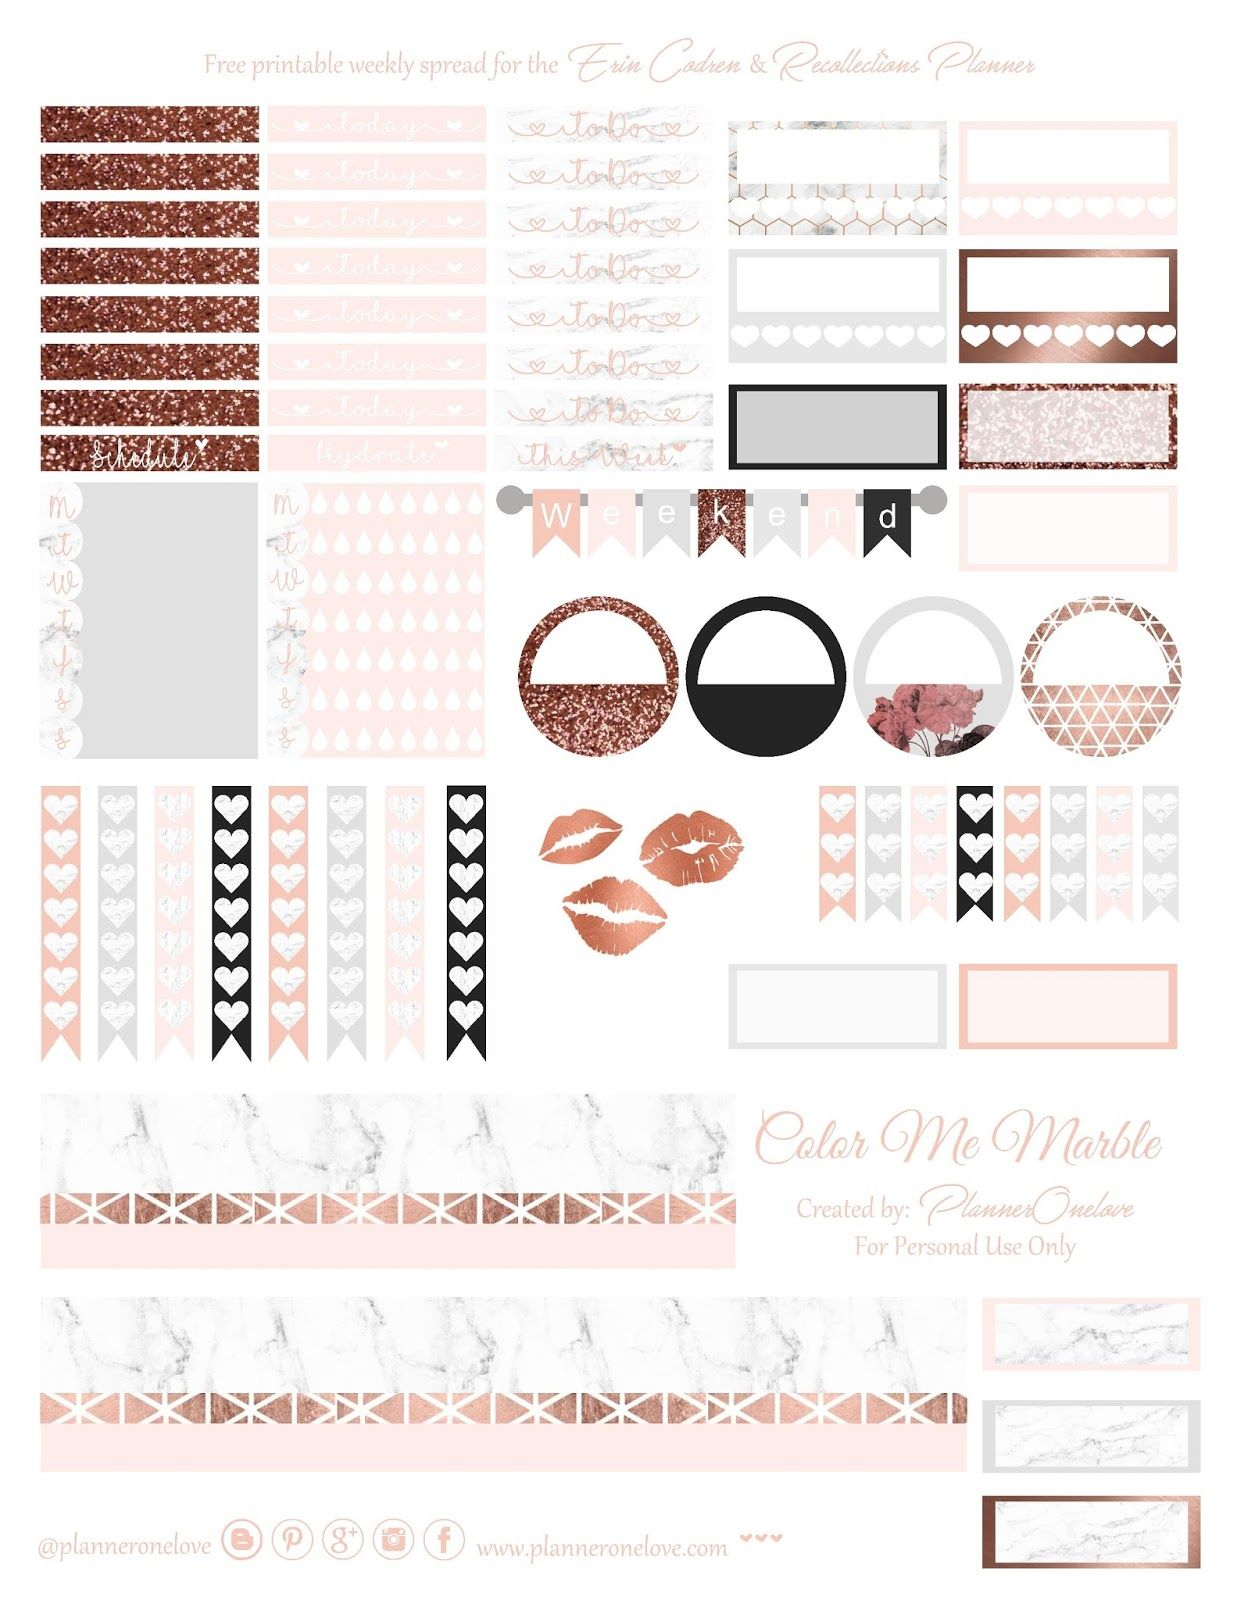 Free Marble Amp Rose Gold Printable Spread For Erin Condren Amp Recollections Planner